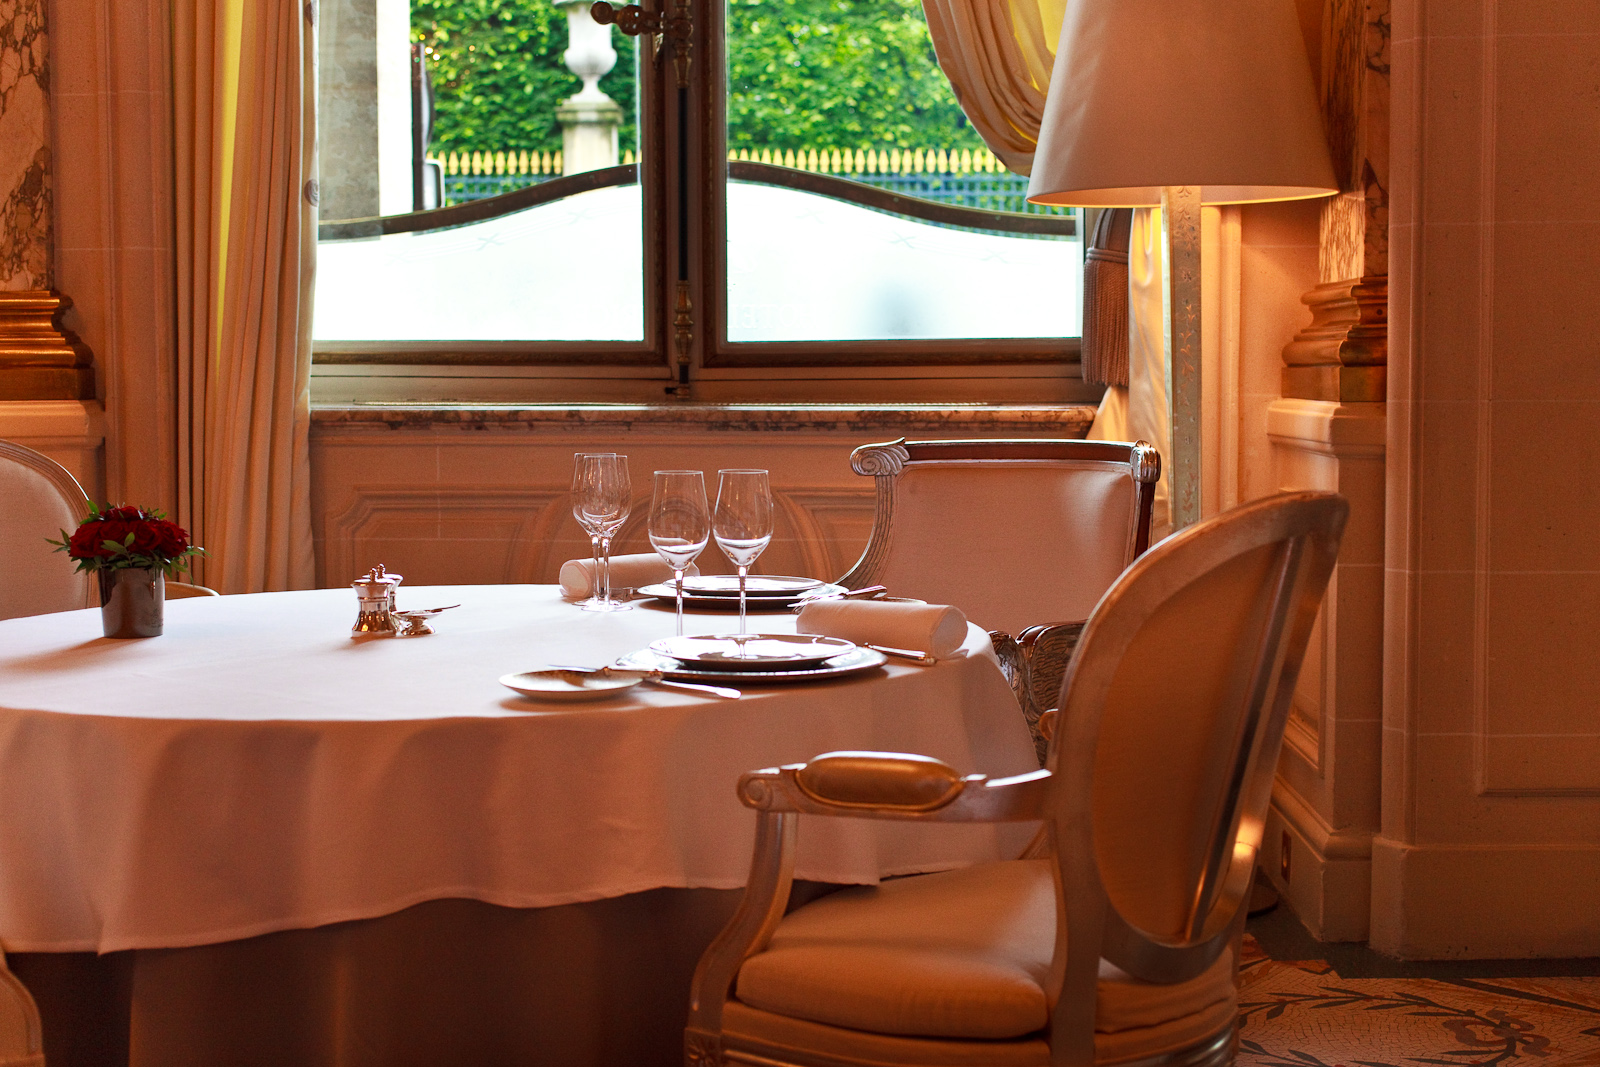 Le Meurice - Lunchtime table